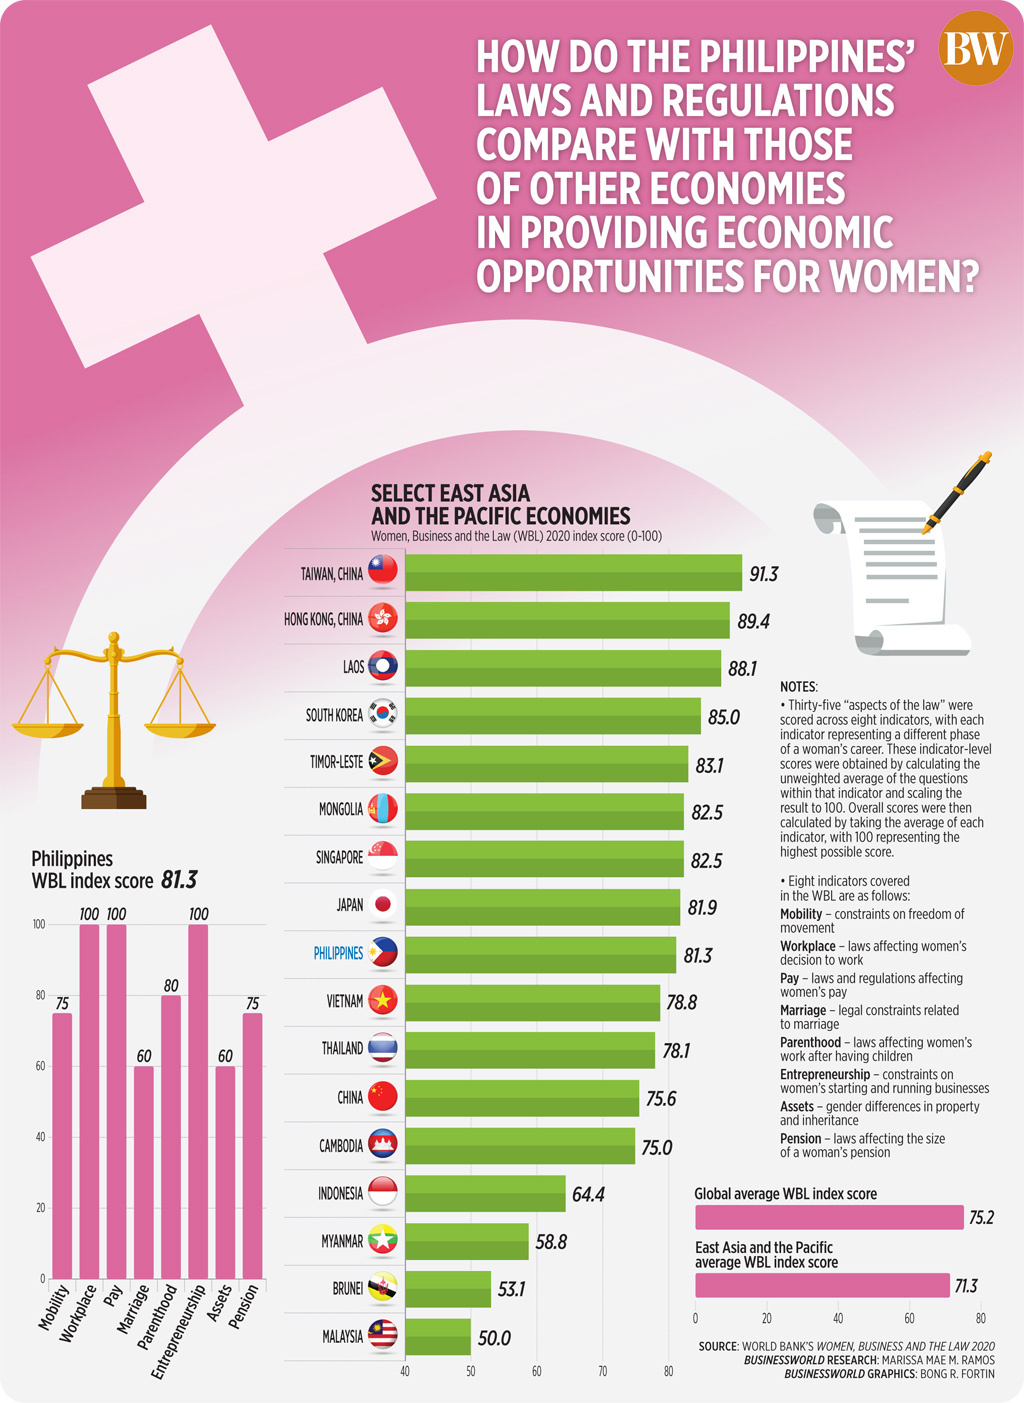 How do the Philippines' laws and regulations compare with those of other economies in providing economic opportunities for women?